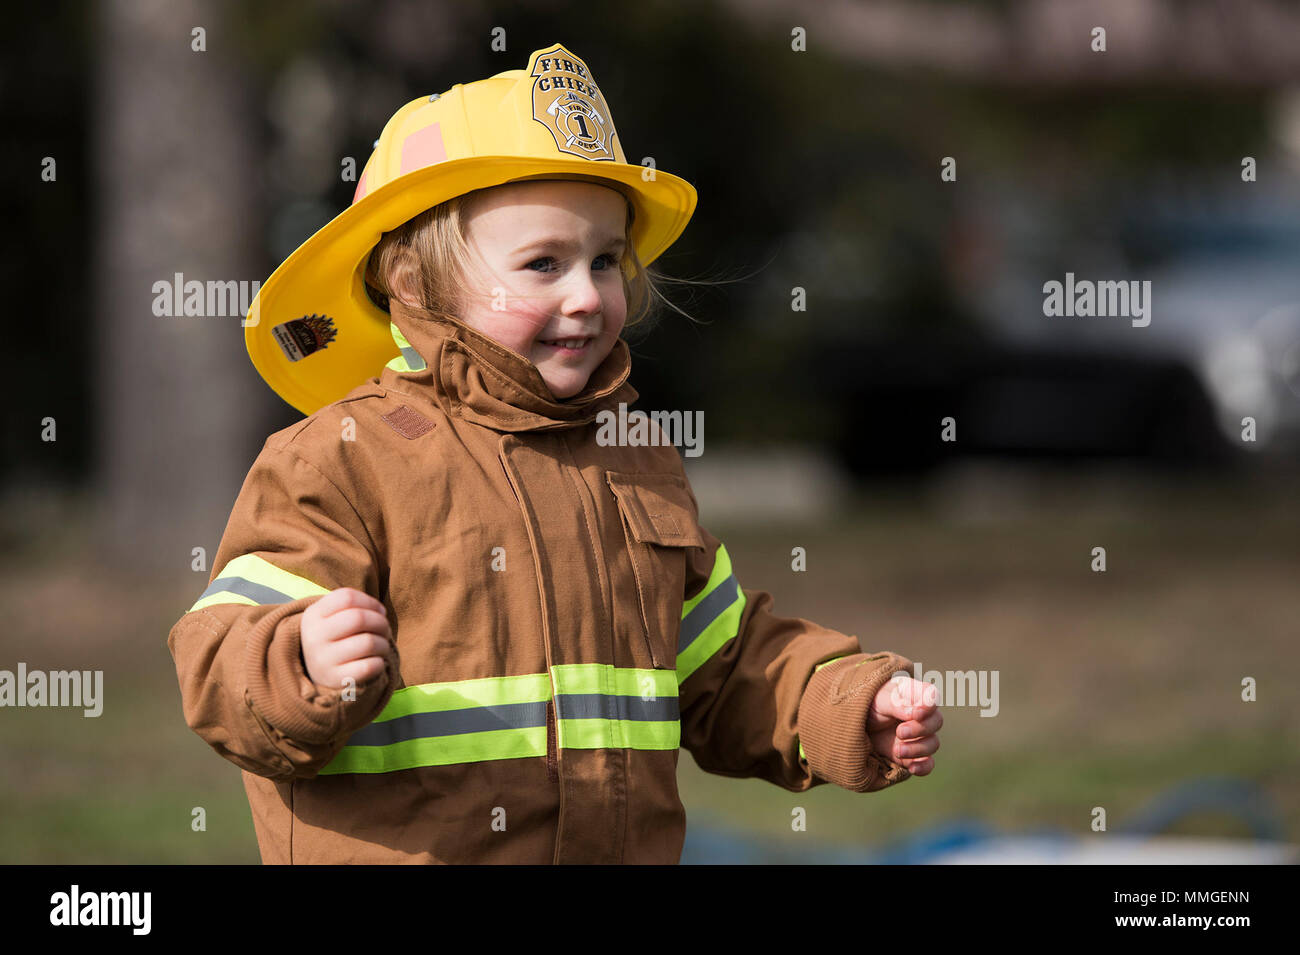 """A child from the Kaiserslautern Military Community runs a child fireman's course during the Fire Prevention Week open house on Ramstein Air Base, Germany, Oct. 7, 2017. The course included a fire hose drag, litter carry and forcible entry challenges. Fire Departments from Ramstein Village, Landstuhl, Carlsberg, and Technical Relief Foundation (THW) Kaiserslautern, participated in the parade and open house. This year's theme, """"Every second counts, plan two ways out!"""" encourages families to have more than one exit plan in case of an emergency. (U.S. Air Force photo by Airman 1st Class Devin M. R - Stock Image"""